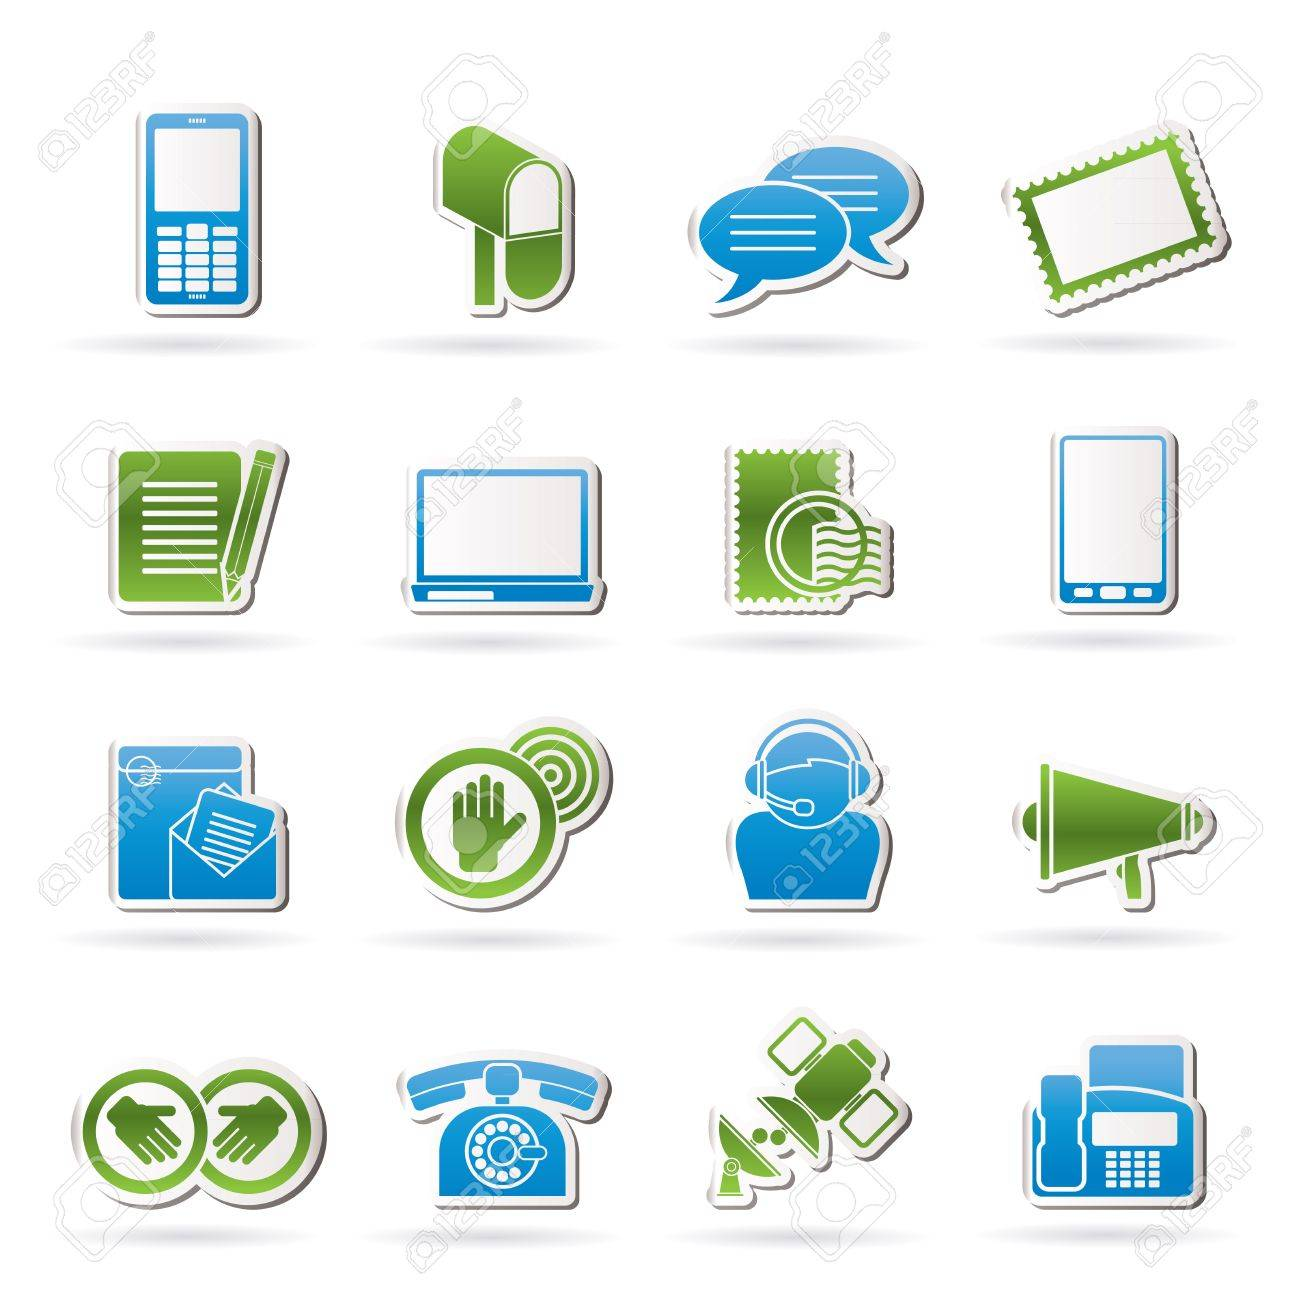 Contact and communication icons - vector icon set - 15952535